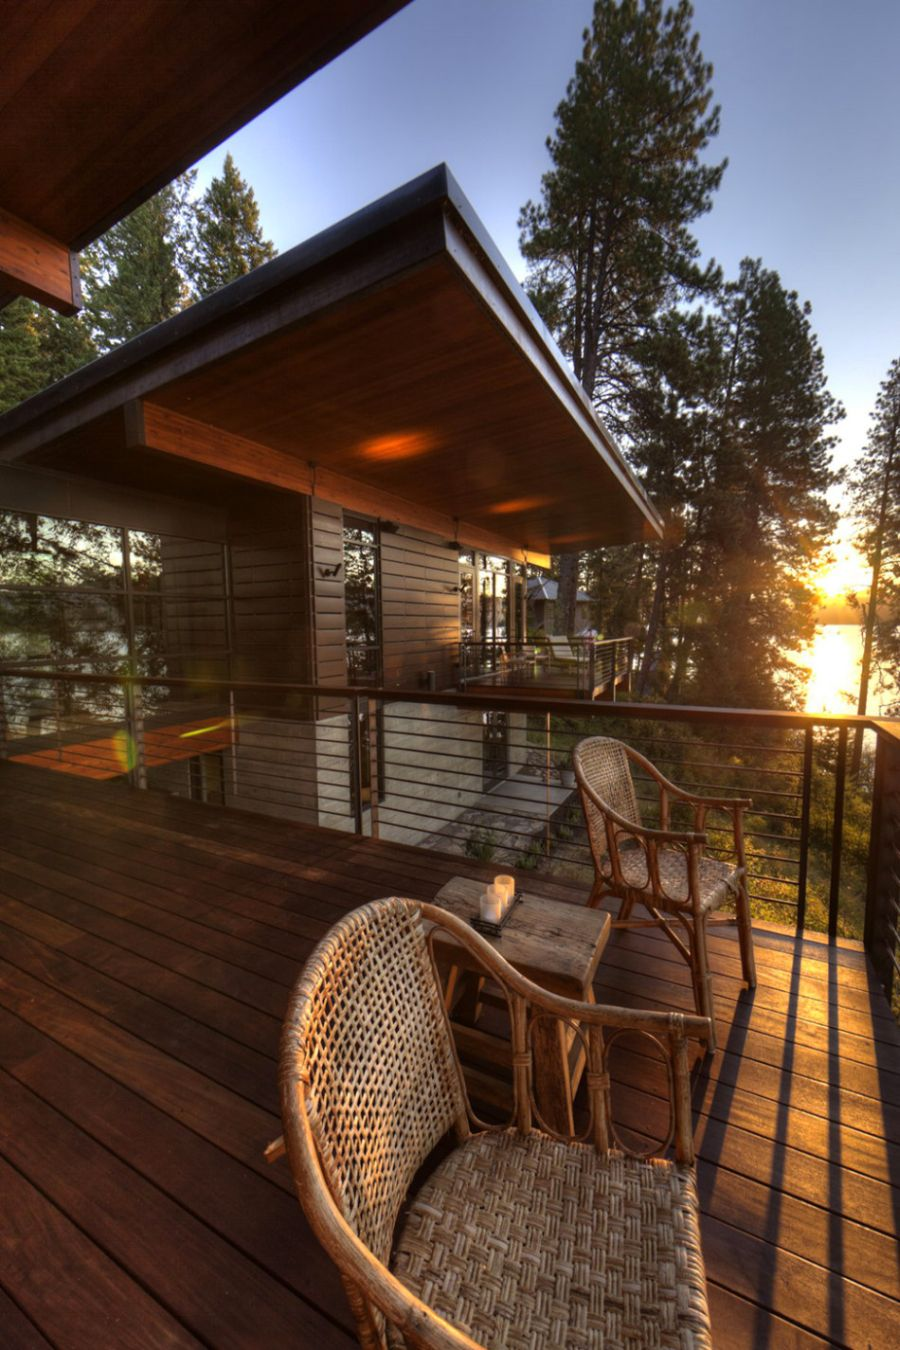 View of setting sun from the deck of Coeur D'Alene Lake house